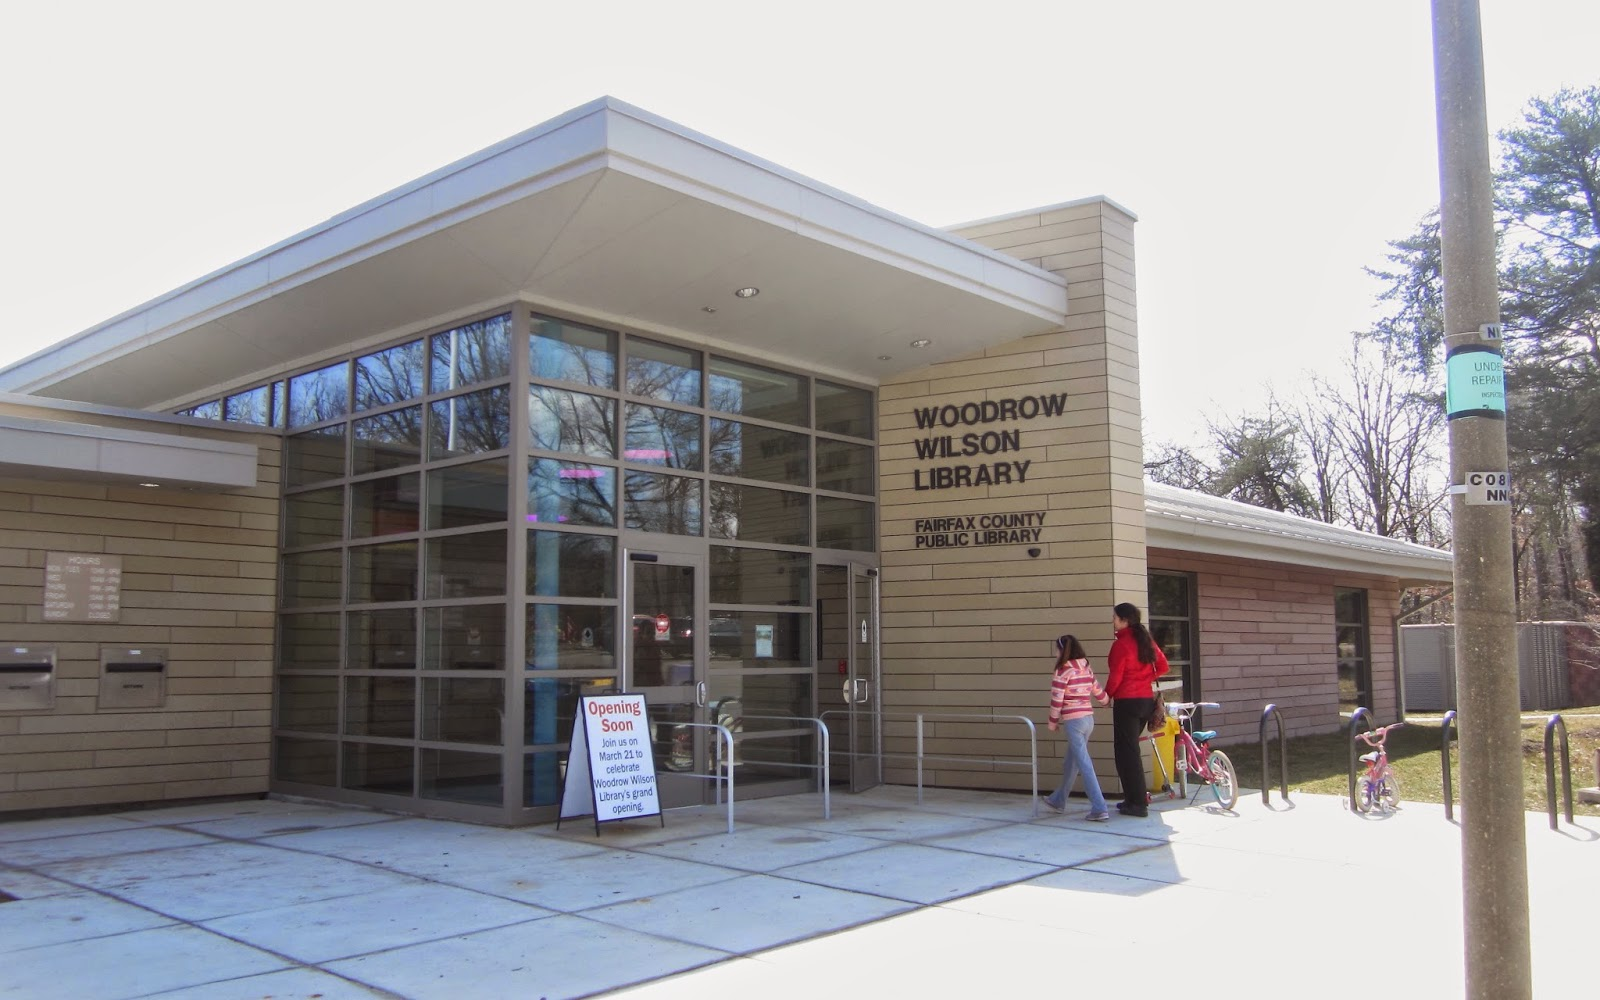 Woodrow Wilson Library - 6101 Knollwood Dr, Falls Church, VA 22041